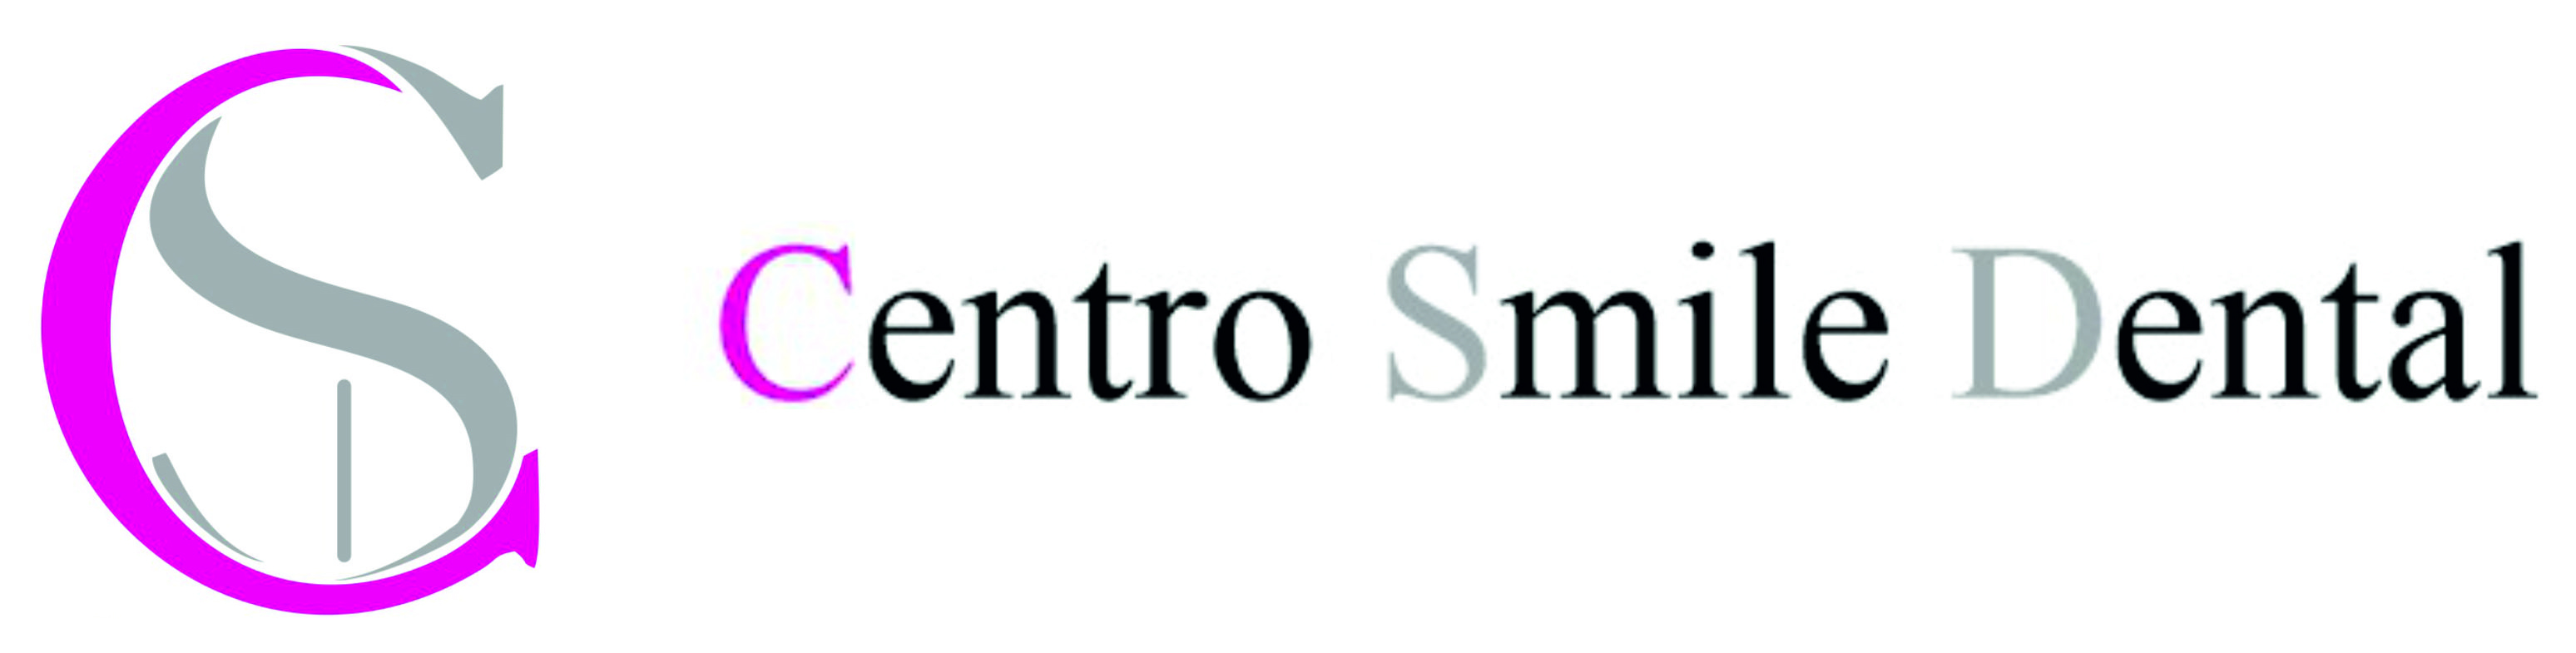 Centro Smile Dental